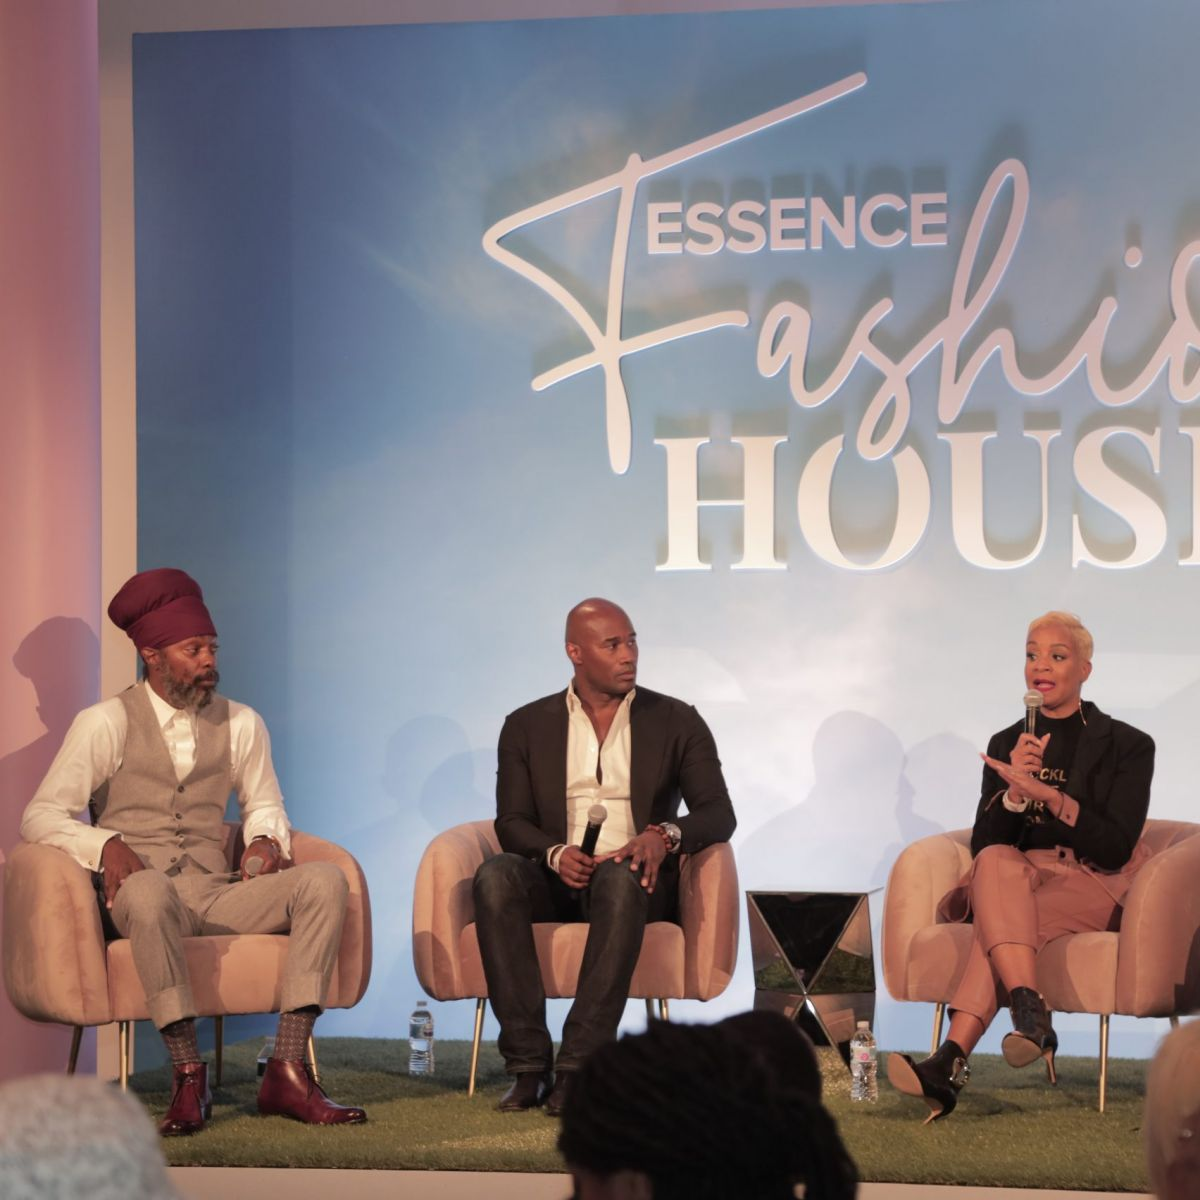 Industry Insiders Broke Down How To Get Into The Business At ESSENCE Fashion House